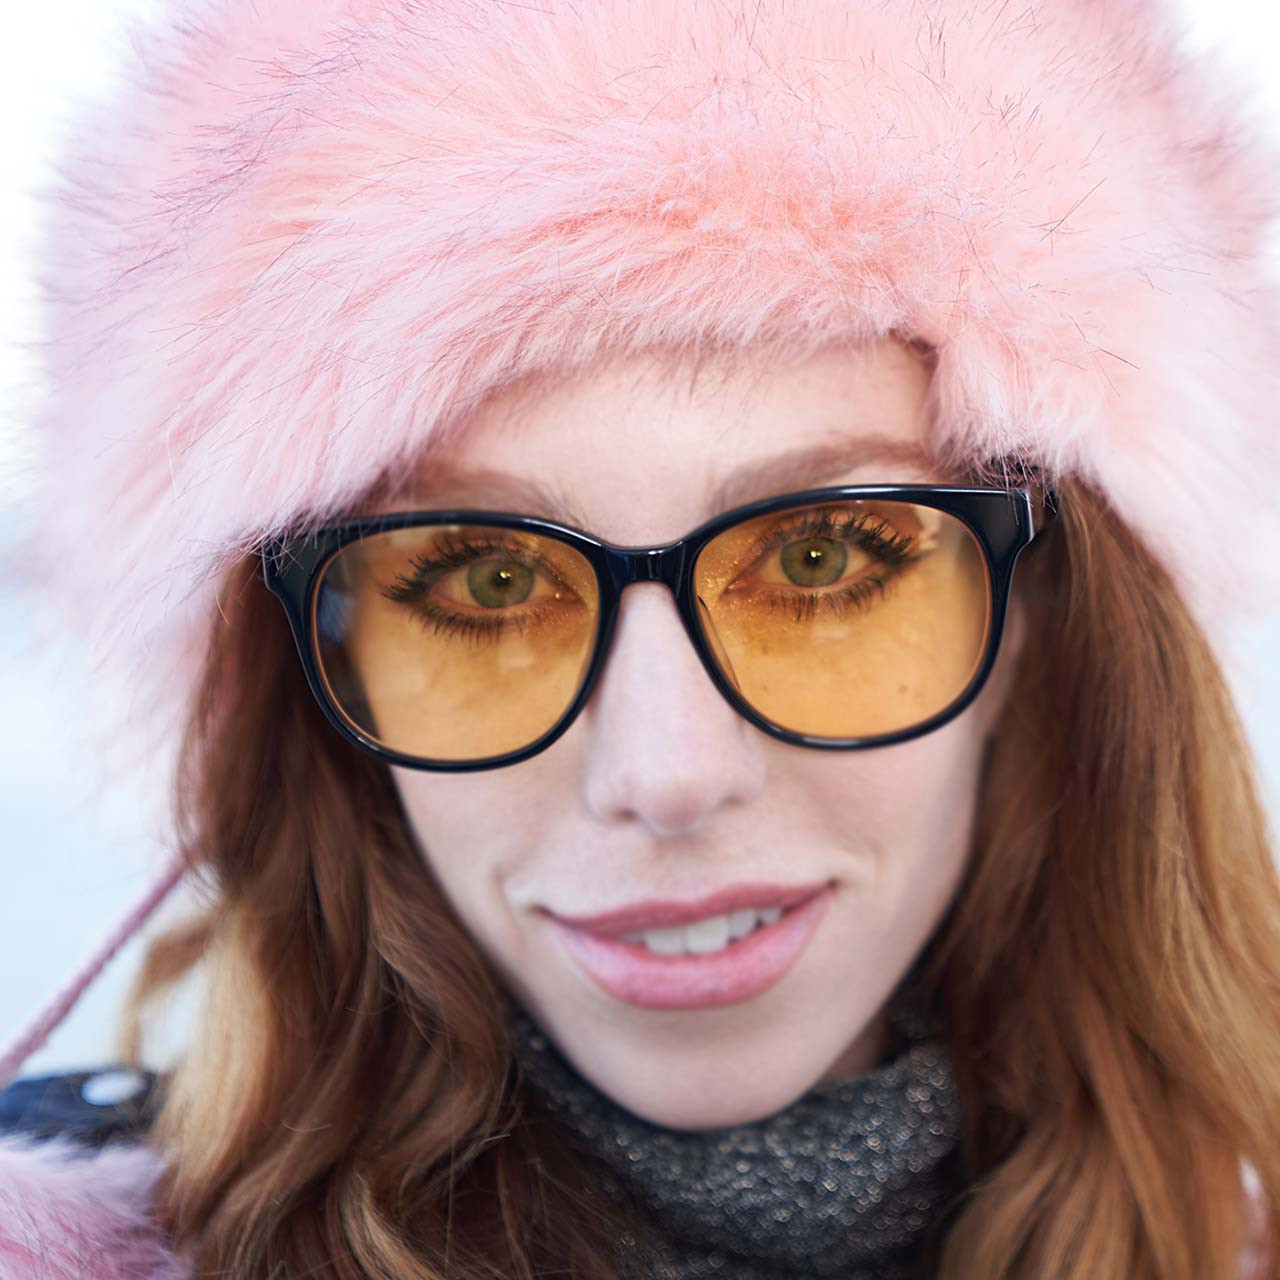 sunglasses with yellow lenses.